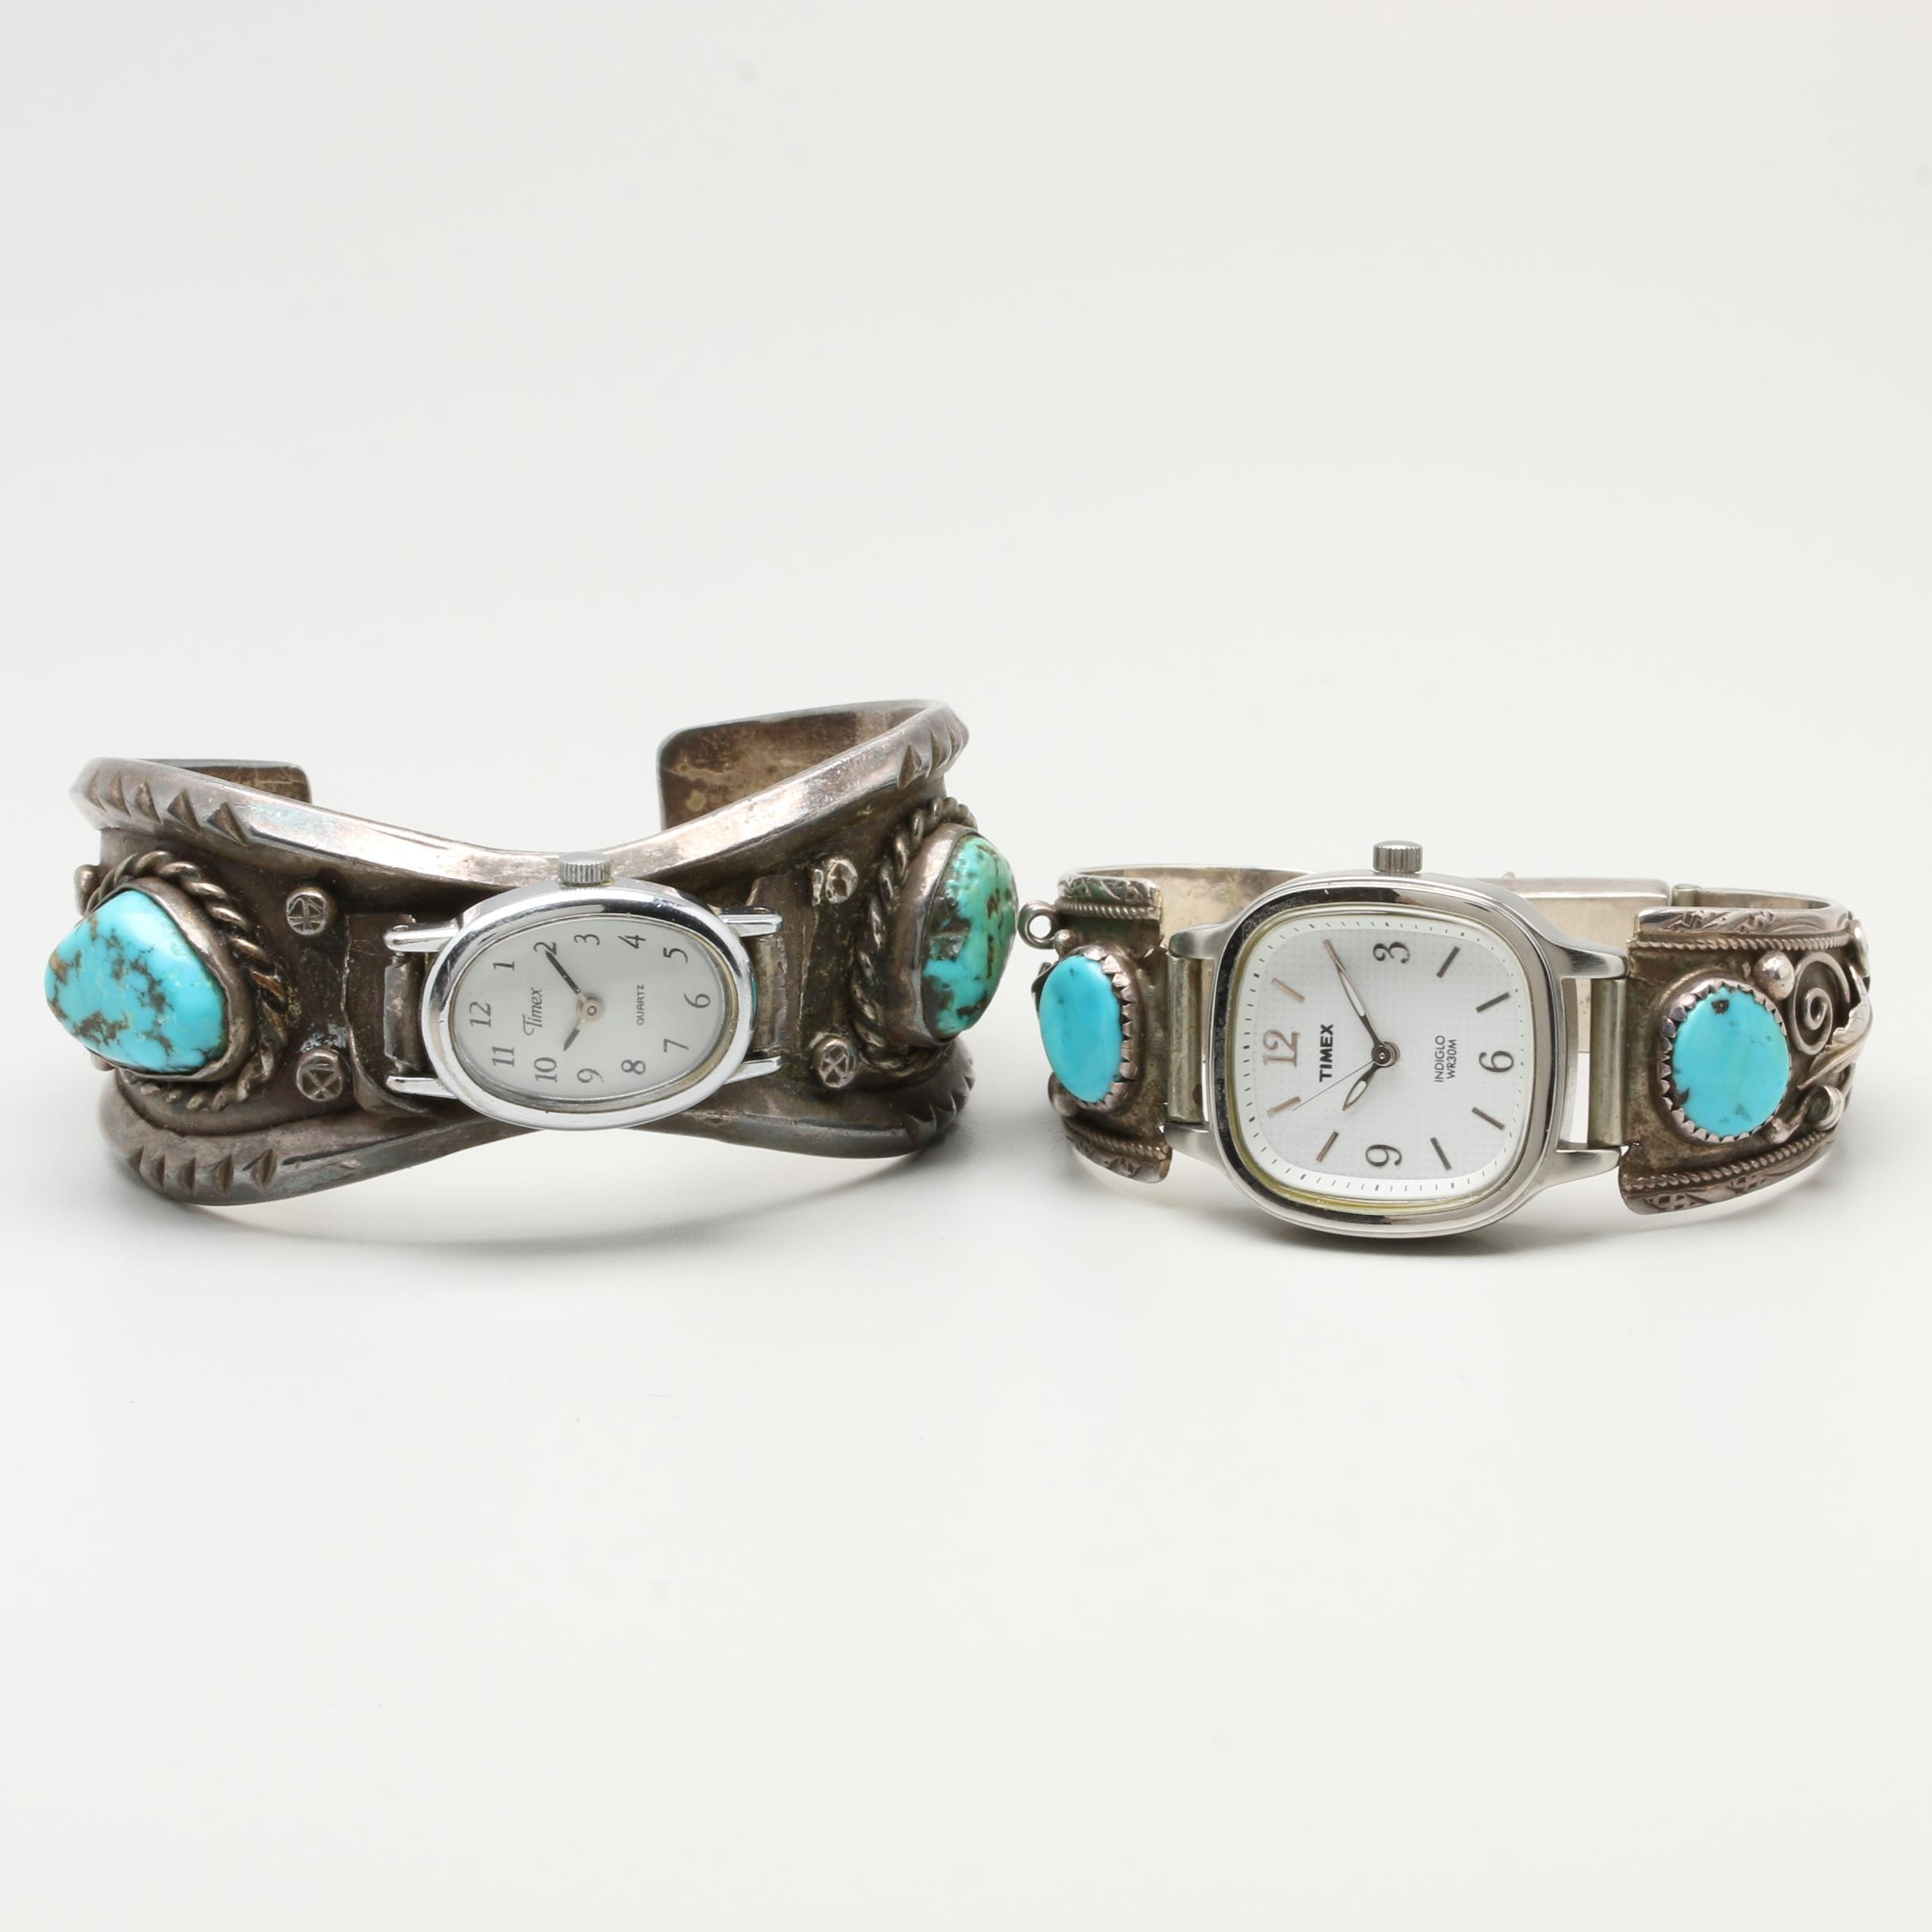 Timex Wristwatches with Southwestern Style Sterling Bracelets and Turquoise